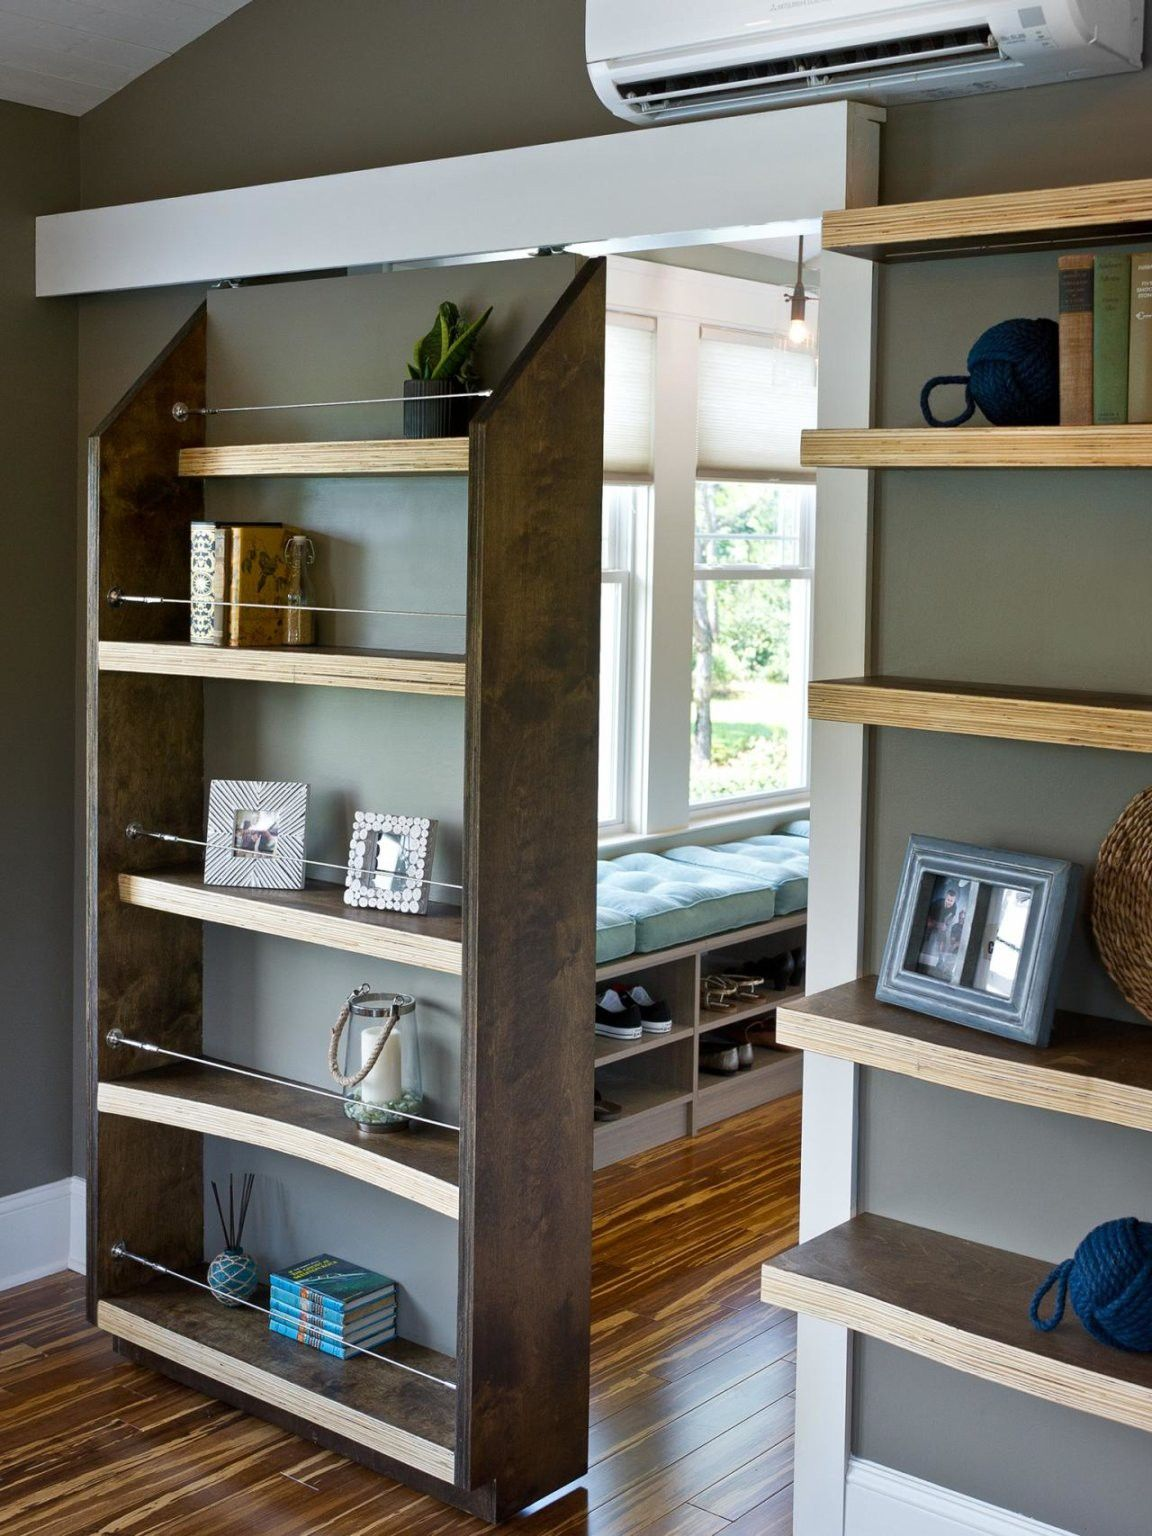 Clever hidden door ideas to make your home more fun to see